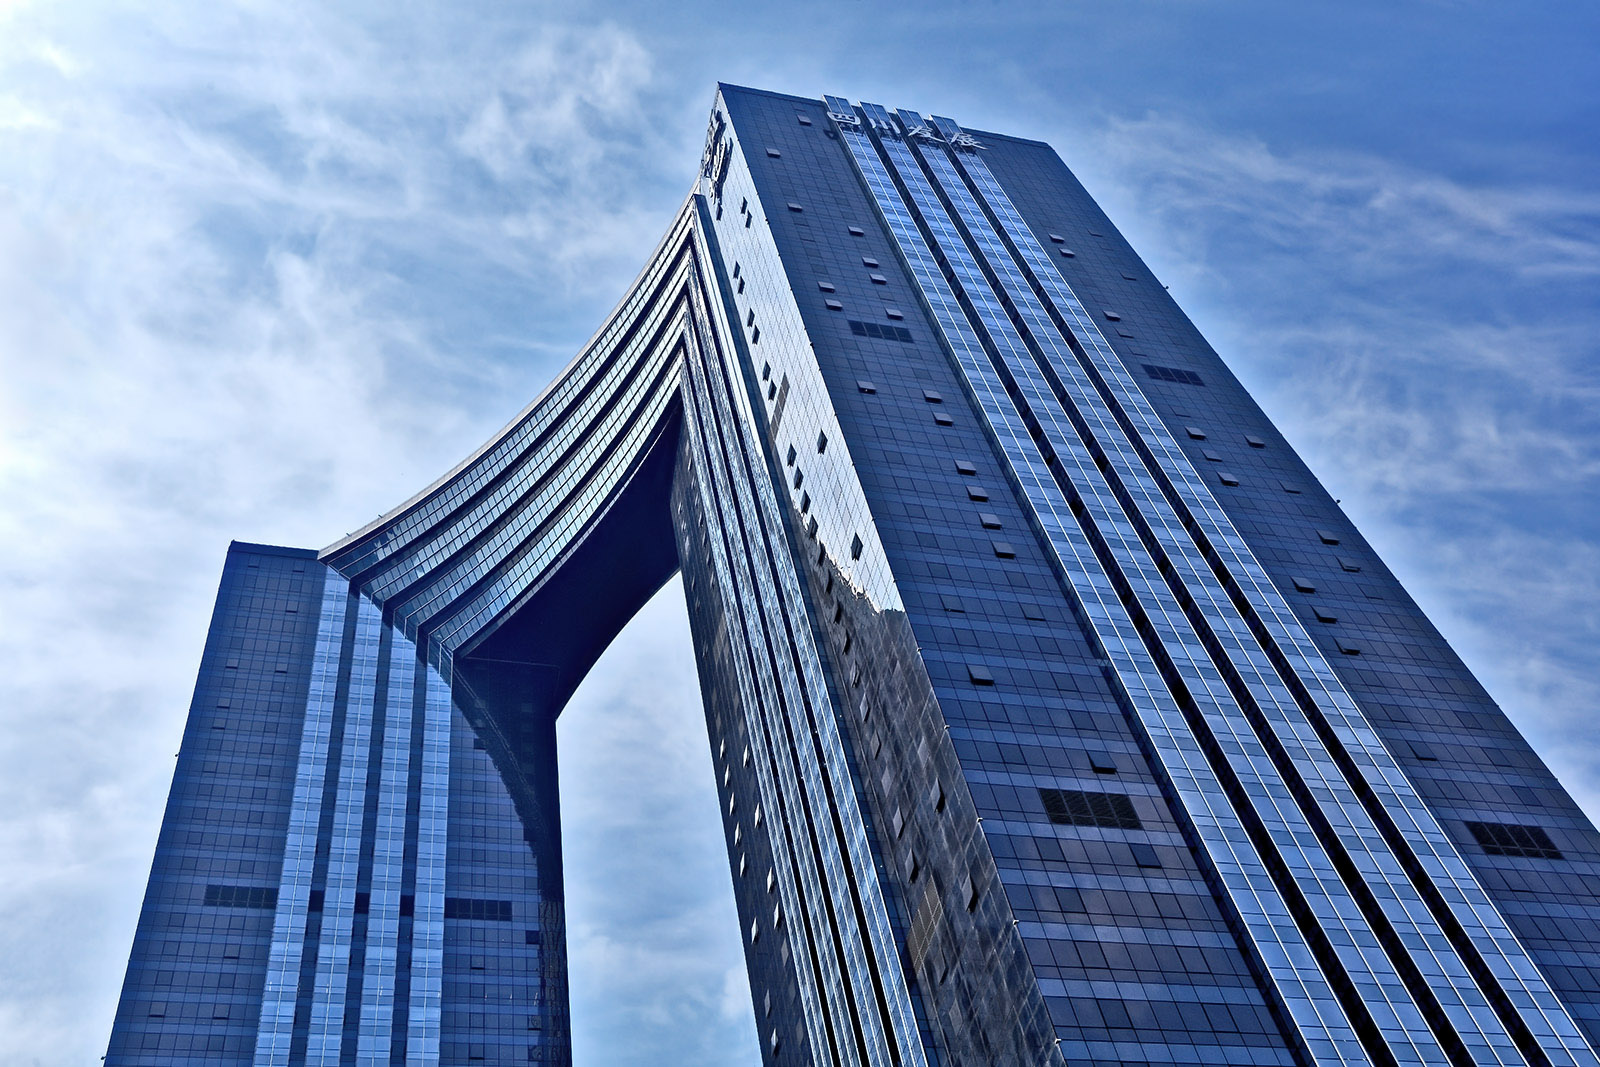 Architectural photography of office building exteriors in China and Asia by Paul Dingman, architectural photographer serving China, Asia, Dubai, and the Middle East.